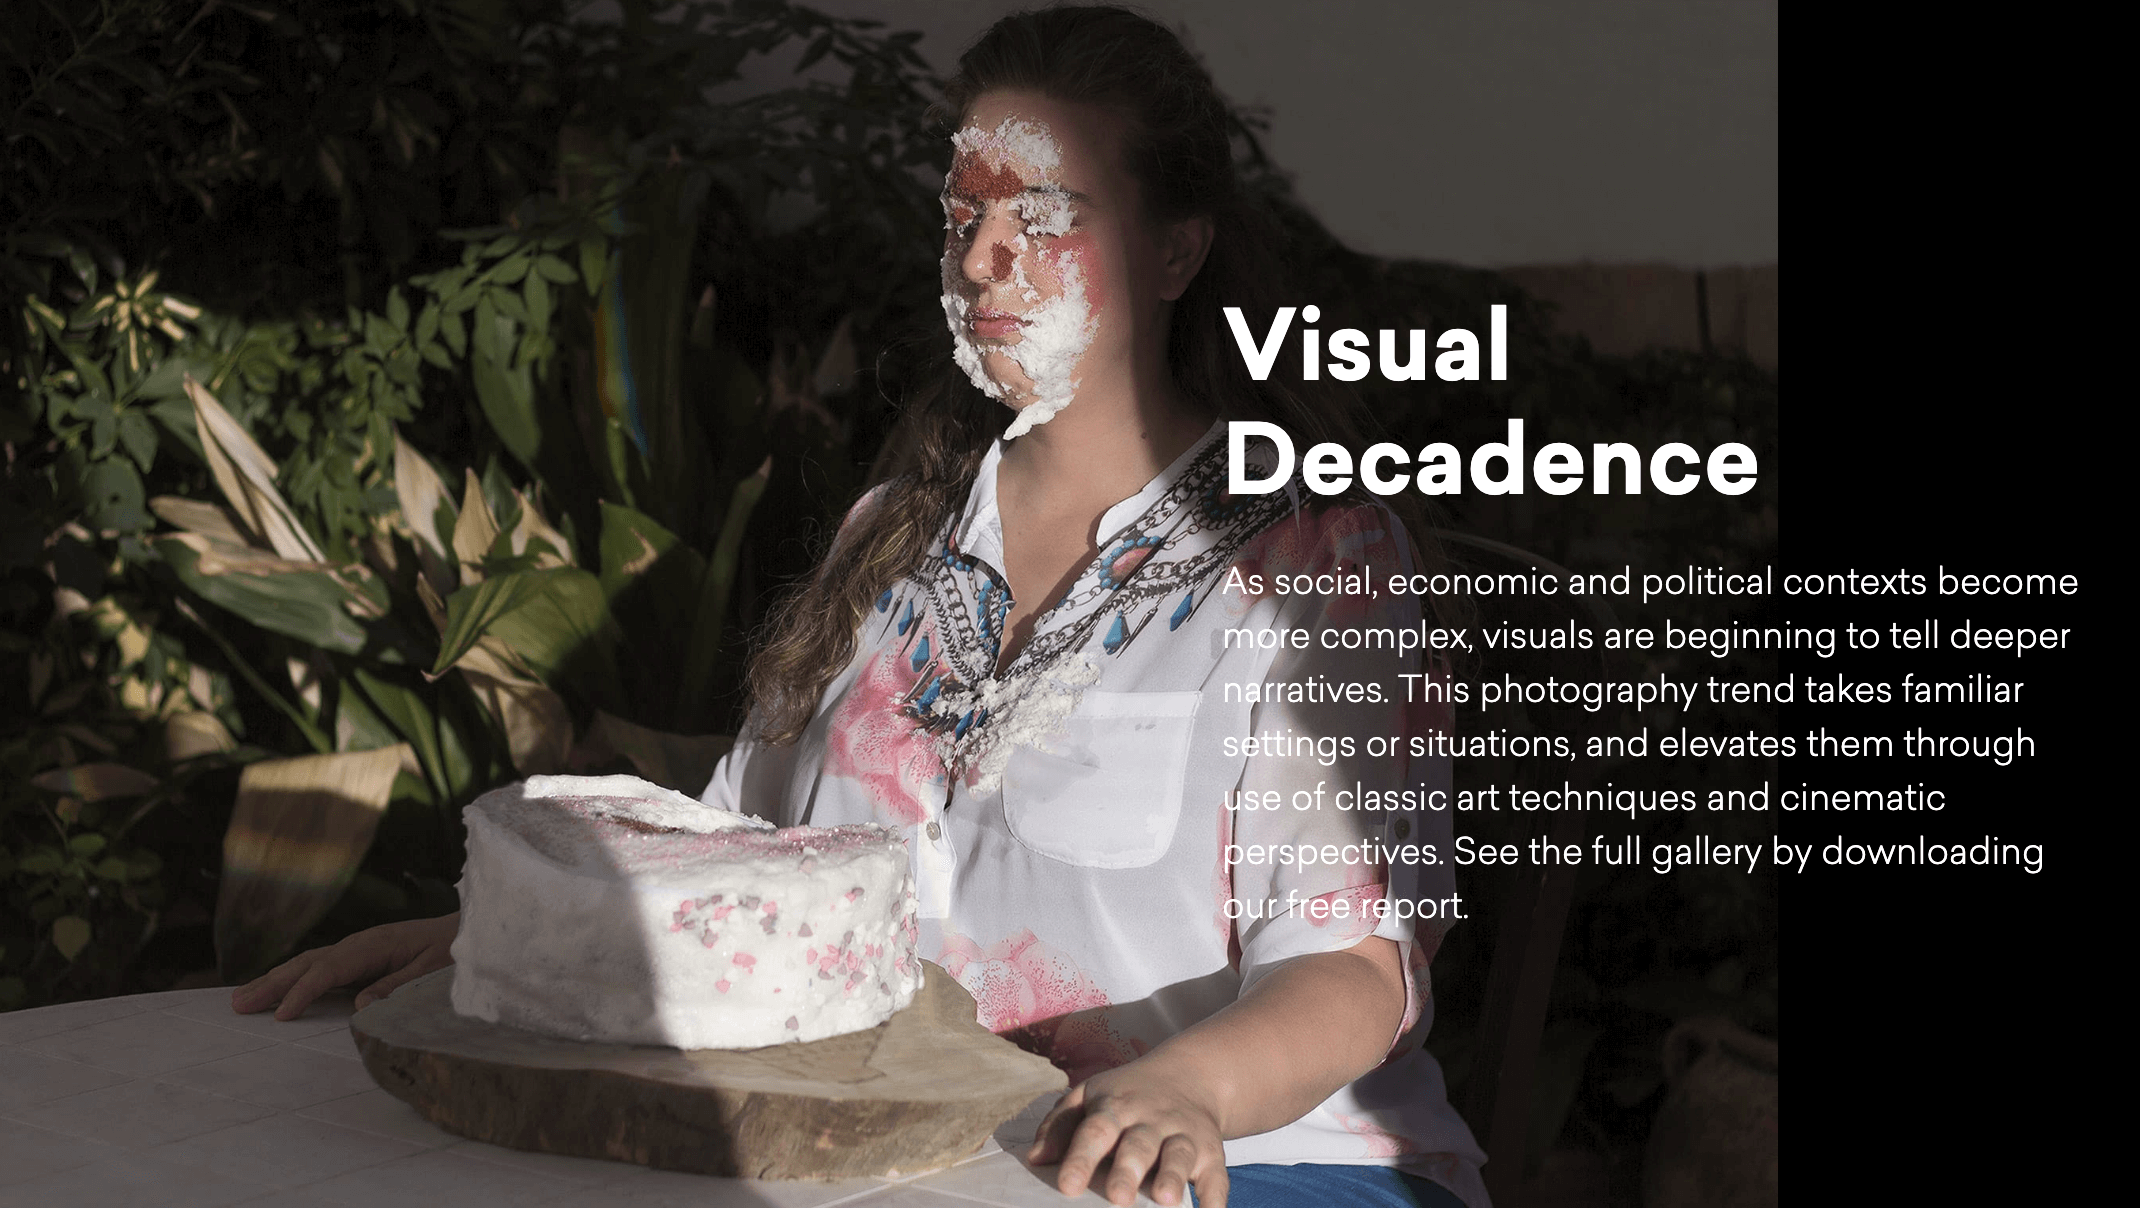 Portrait of a woman sitting at a table with cake on her face and a cake on the table in front of her stock photograph by Jumo Avilés EyeEm